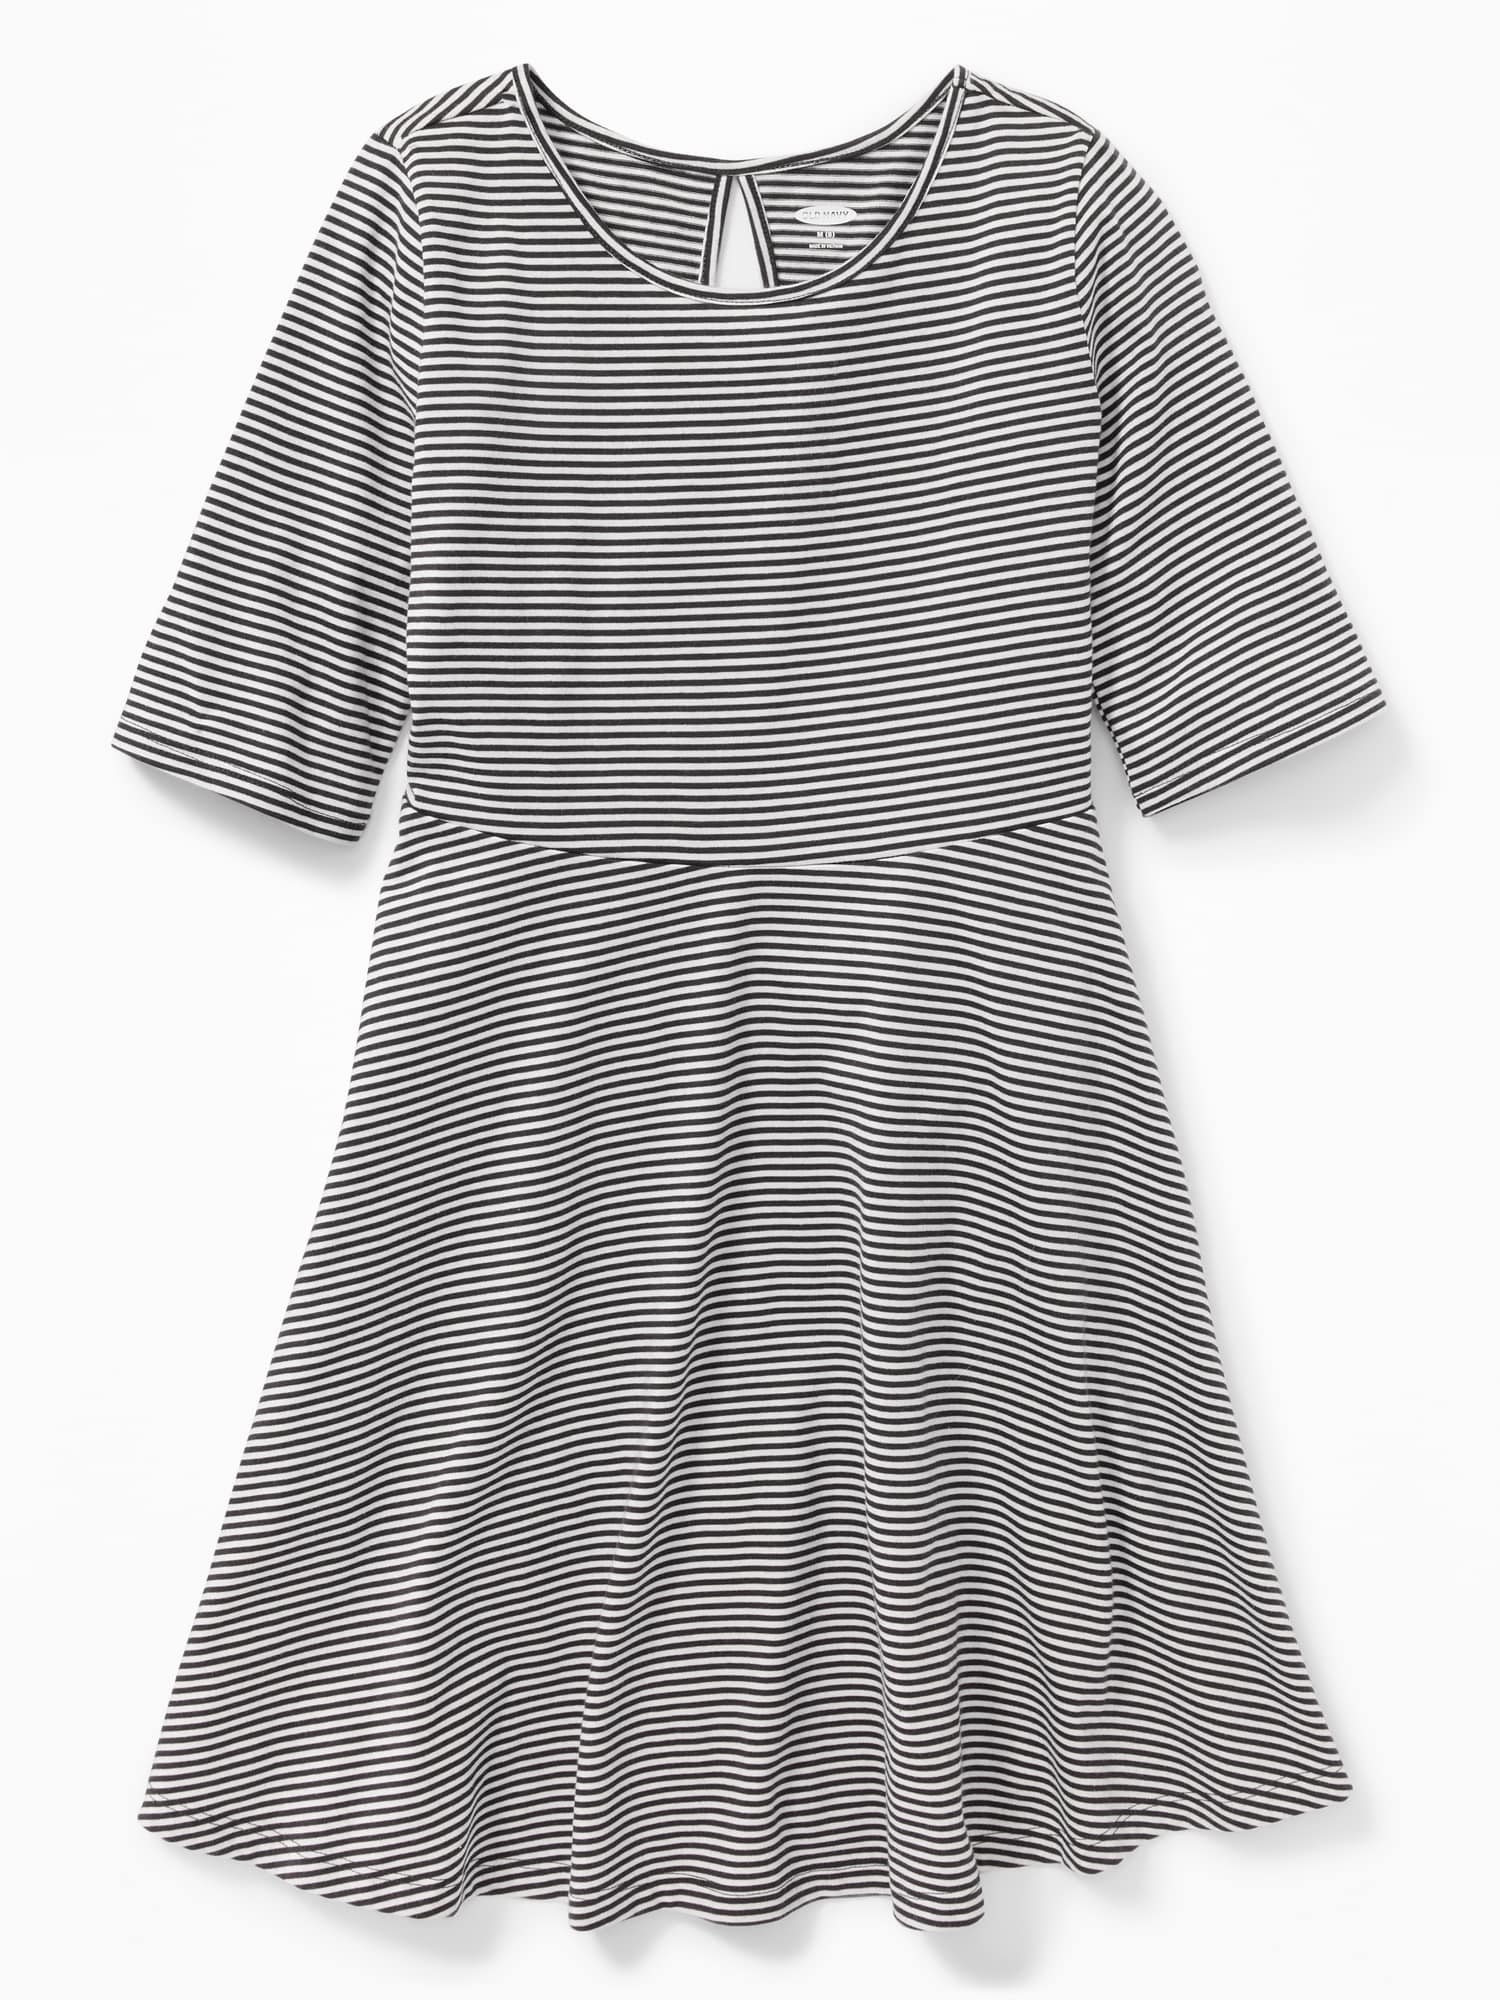 cec760851 Patterned Jersey Fit   Flare Dress for Girls